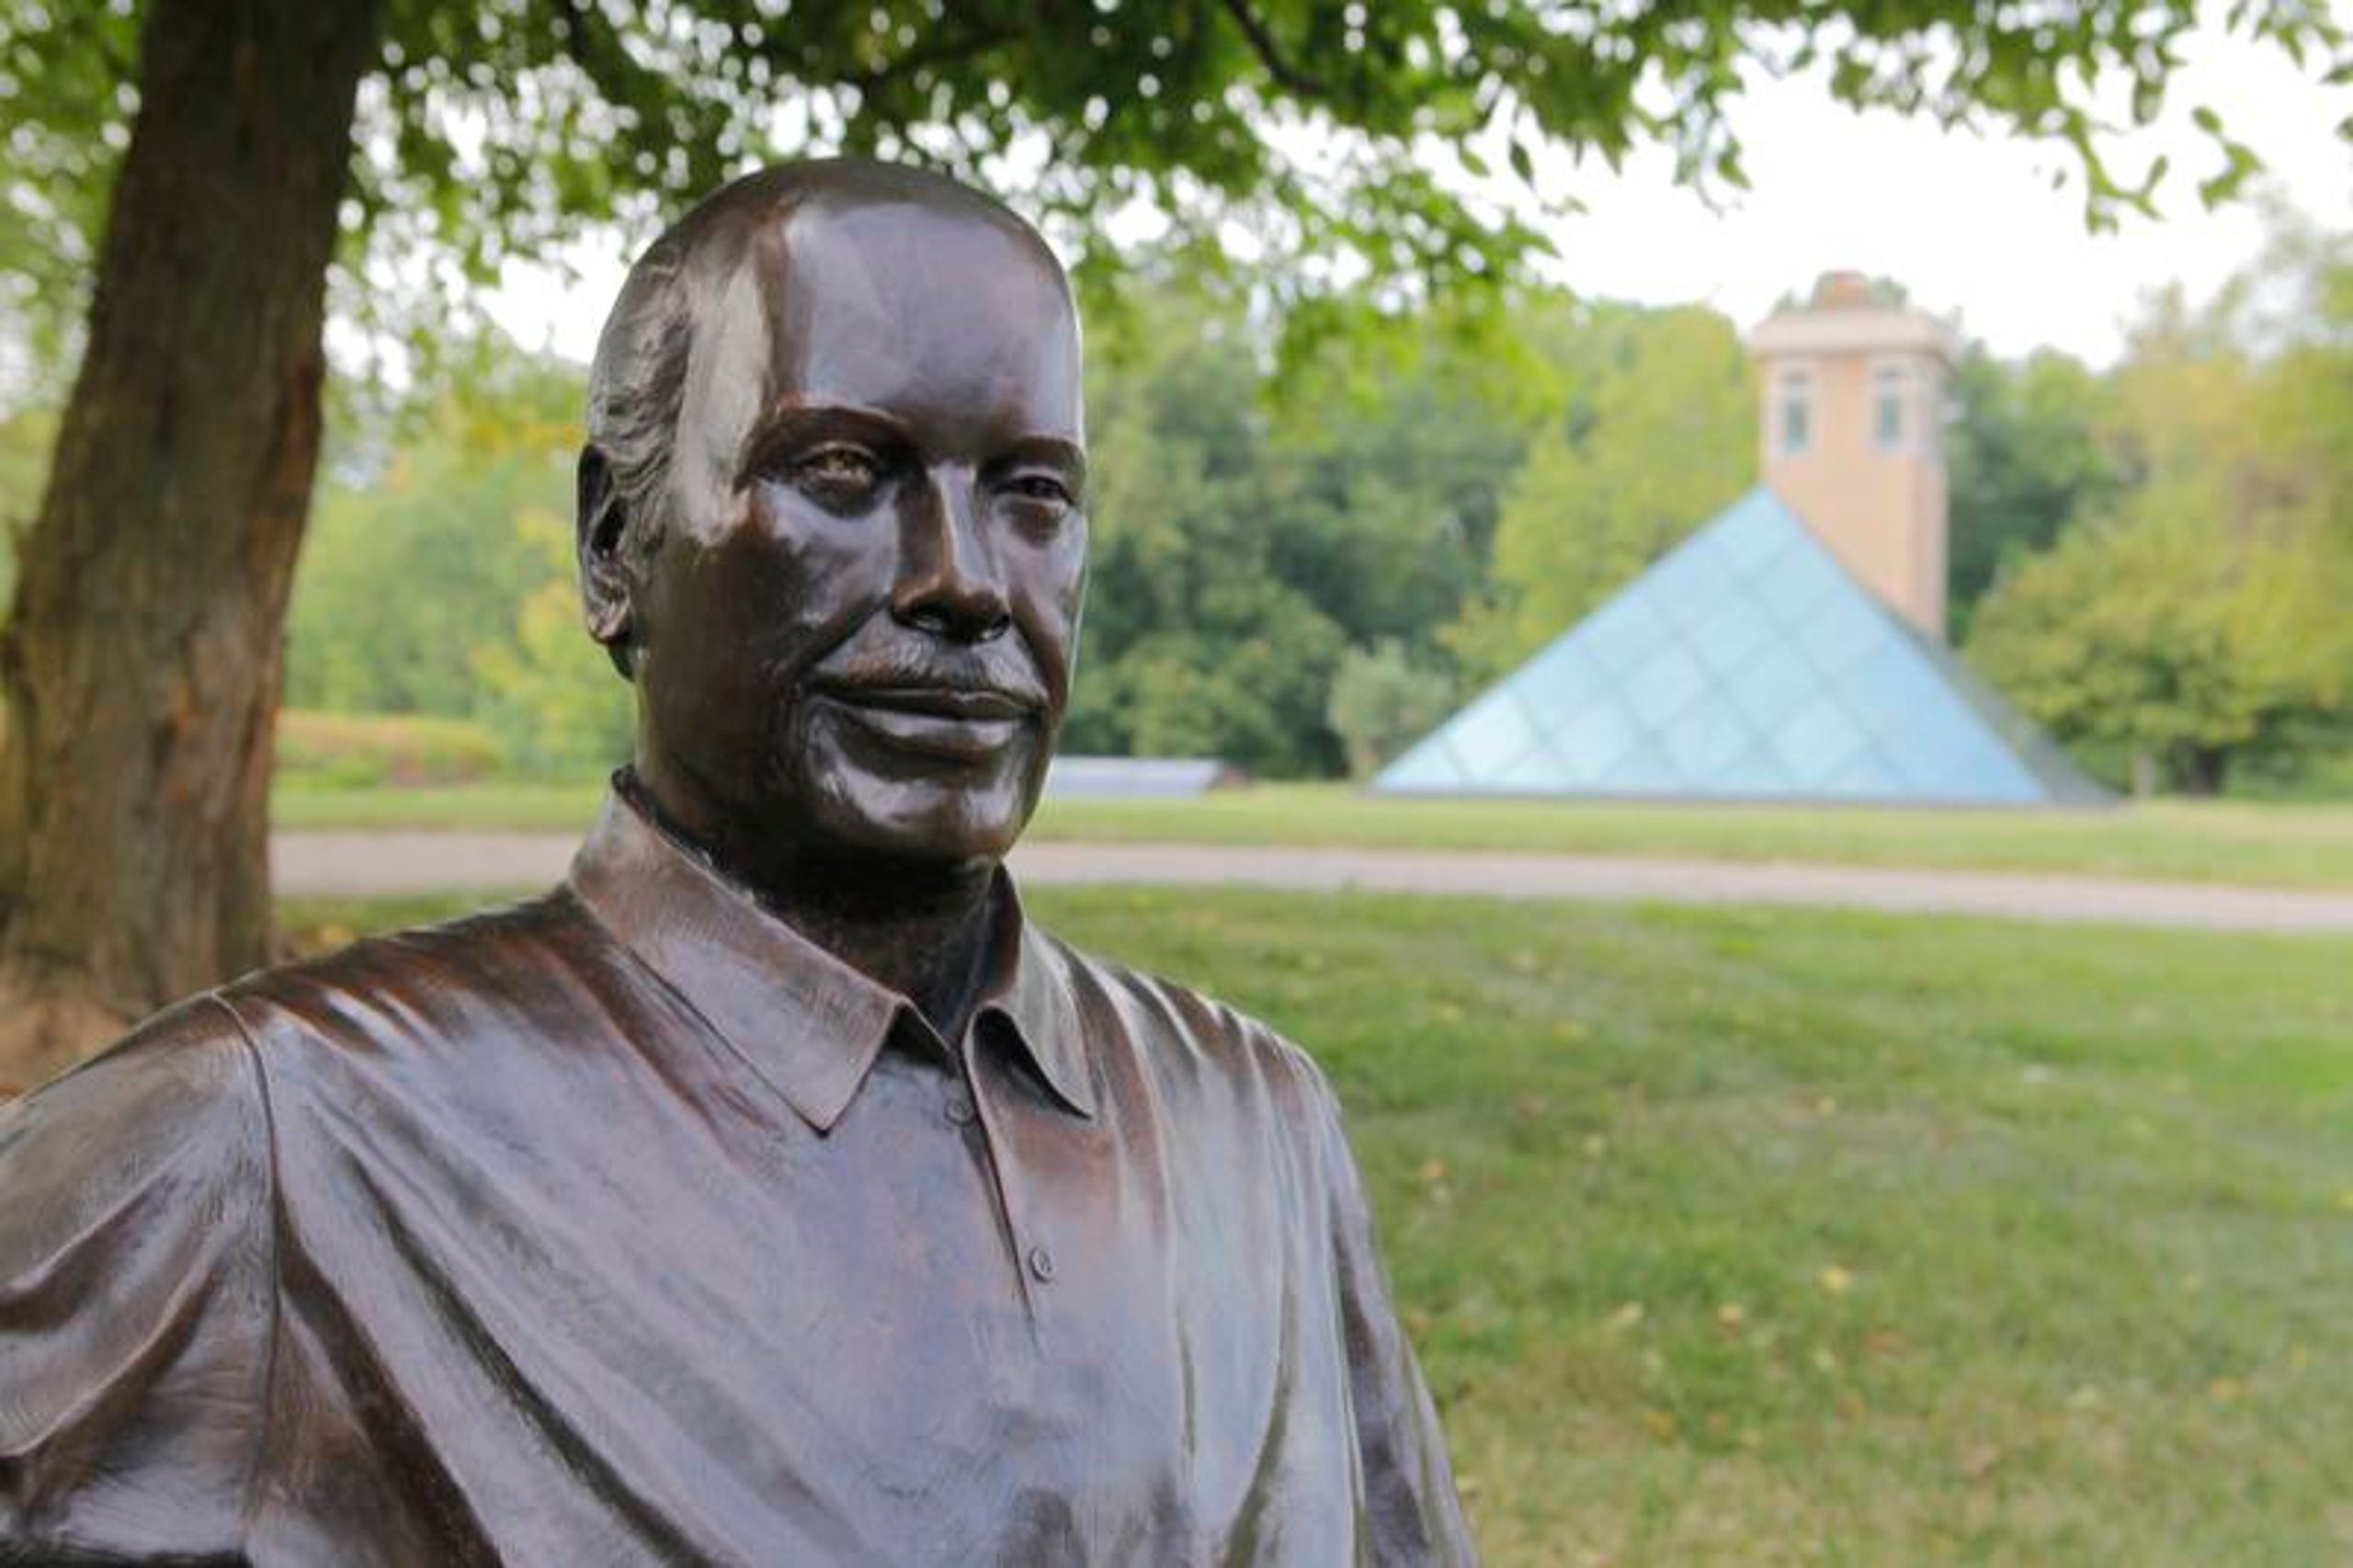 A statue of a man in the foreground, and in the back is the Pyramid House. Lots of green grass and trees in Ohio.